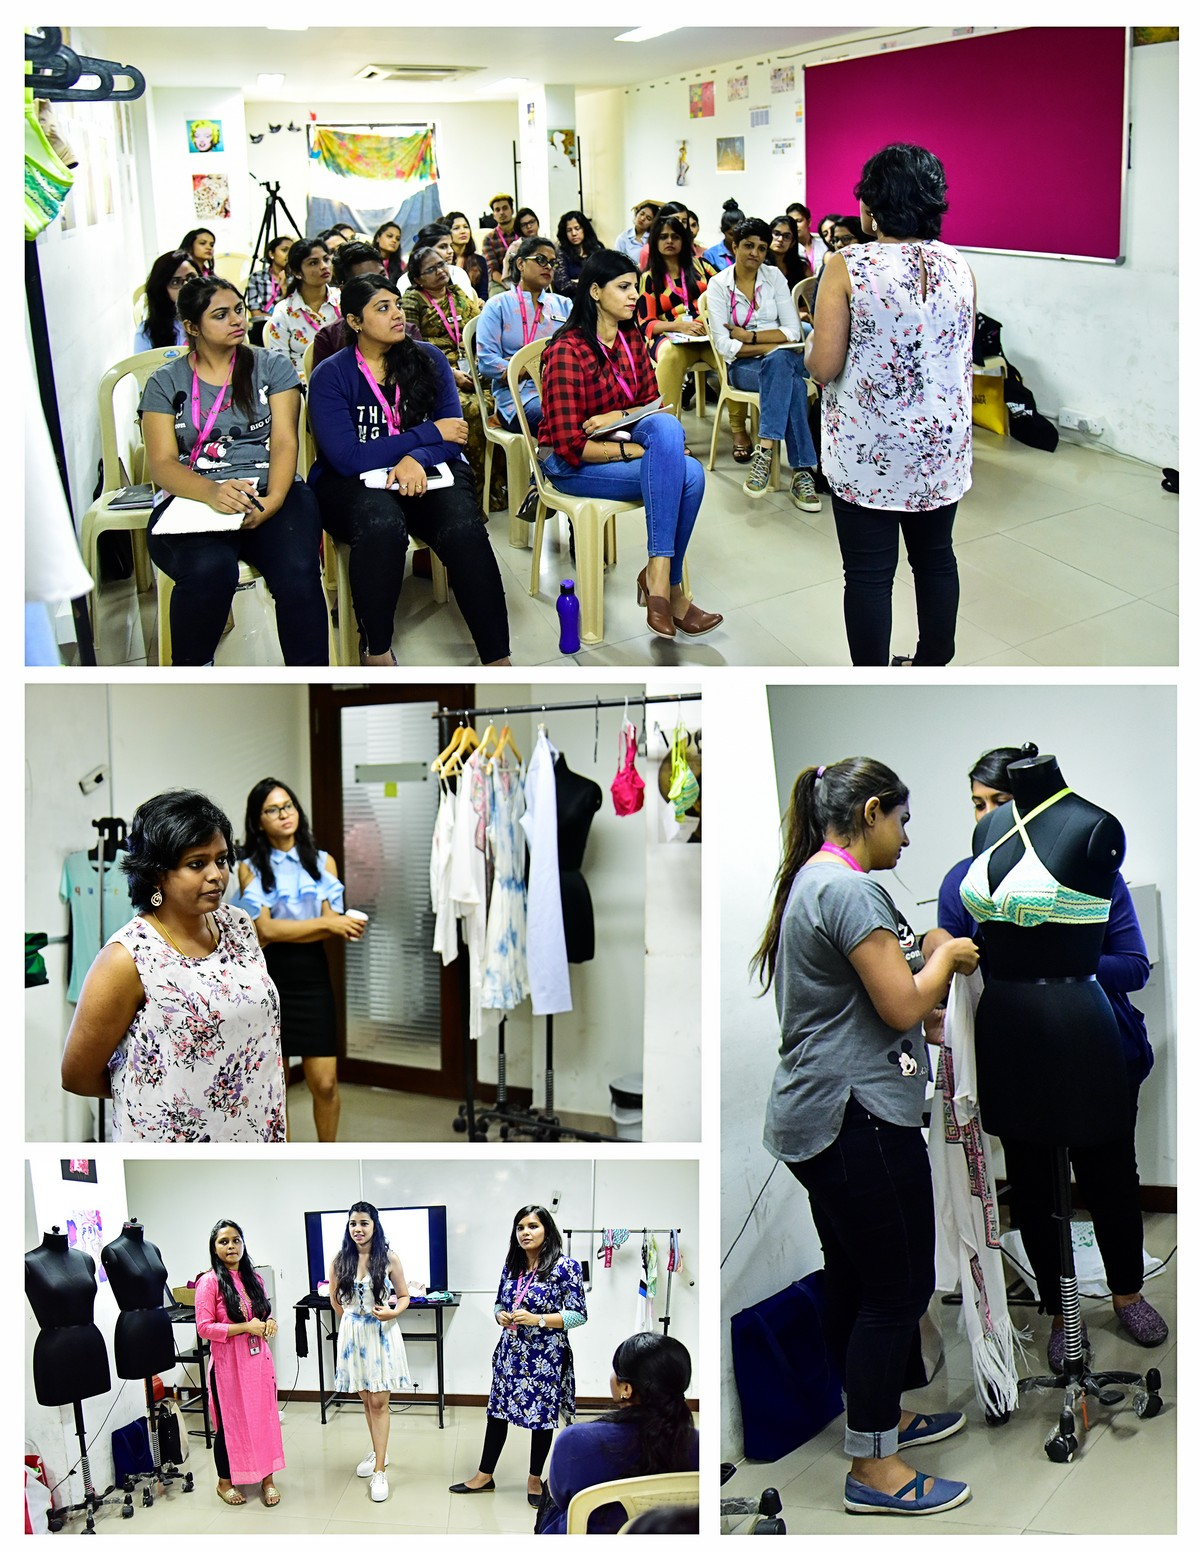 Styling Workshop by Ms. Lakshmi Murugesh from Zivame – Department of Fashion Design | Shot By : Jerin Nath styling workshop by ms. lakshmi murugesh from zivame - Zivame JD Institute - Styling Workshop by Ms. Lakshmi Murugesh from Zivame